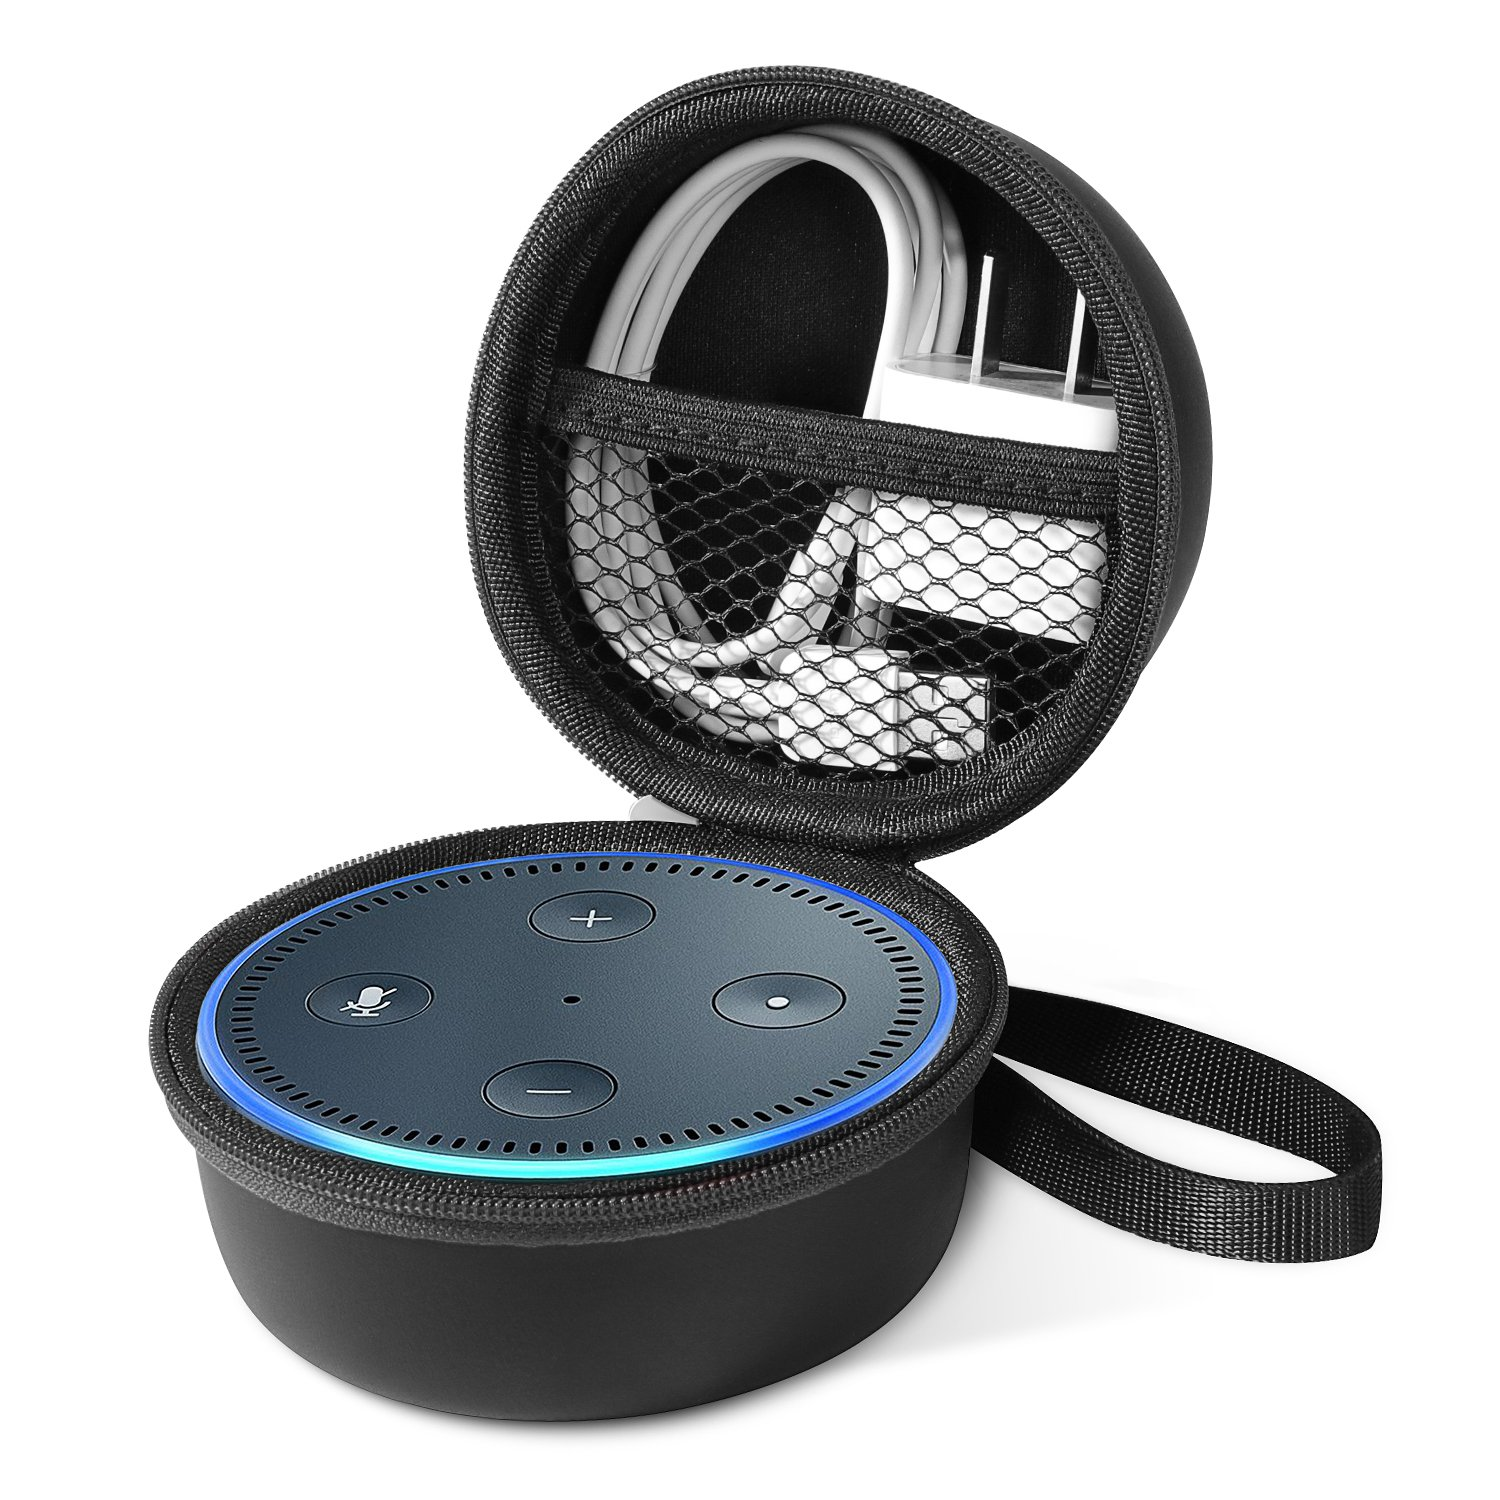 Echo Dot Case, Carry Travel Zipper Portable Protective Case Cover Bag Box for Amazon Echo Dot and All-New Echo Dot (2nd Generation), fit with USB Cable and Wall Charger (Black)